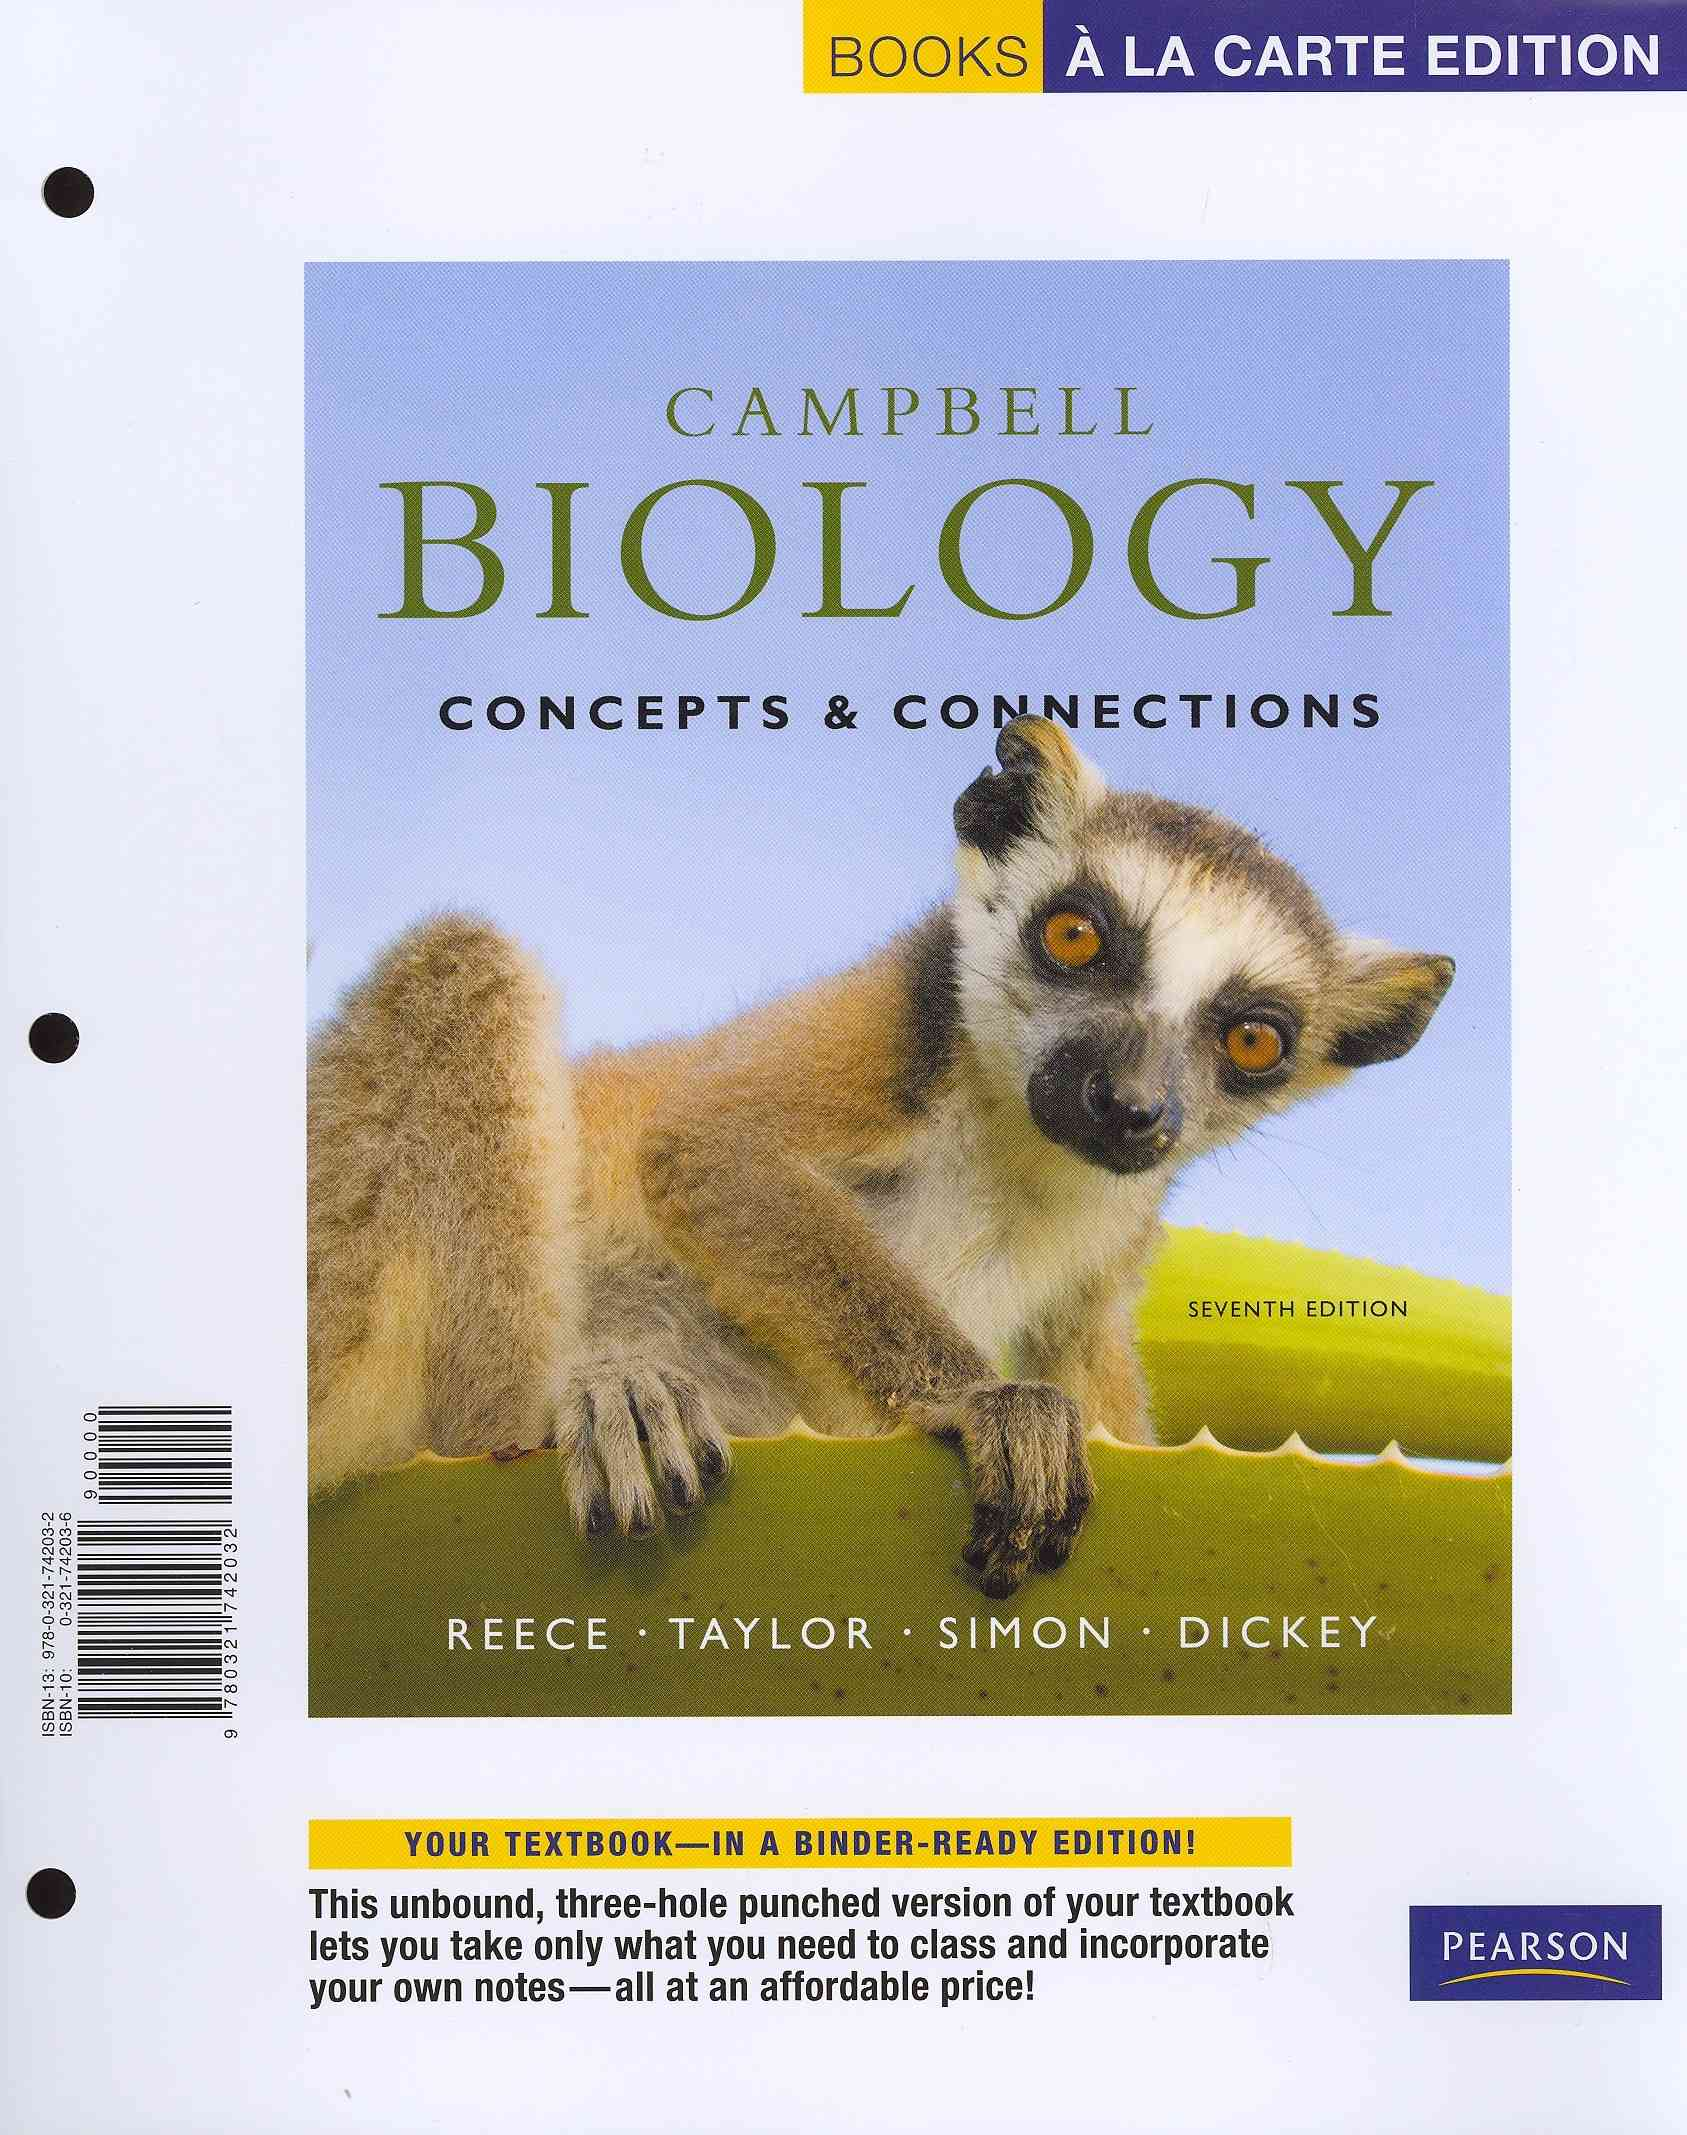 Benjamin-Cummings Publishing Company Campbell Biology: Concepts & Connections [With Access Code] (7th Edition) by Reece, Jane B./ Taylor, Martha R./ Simon, Eric J. [ at Sears.com